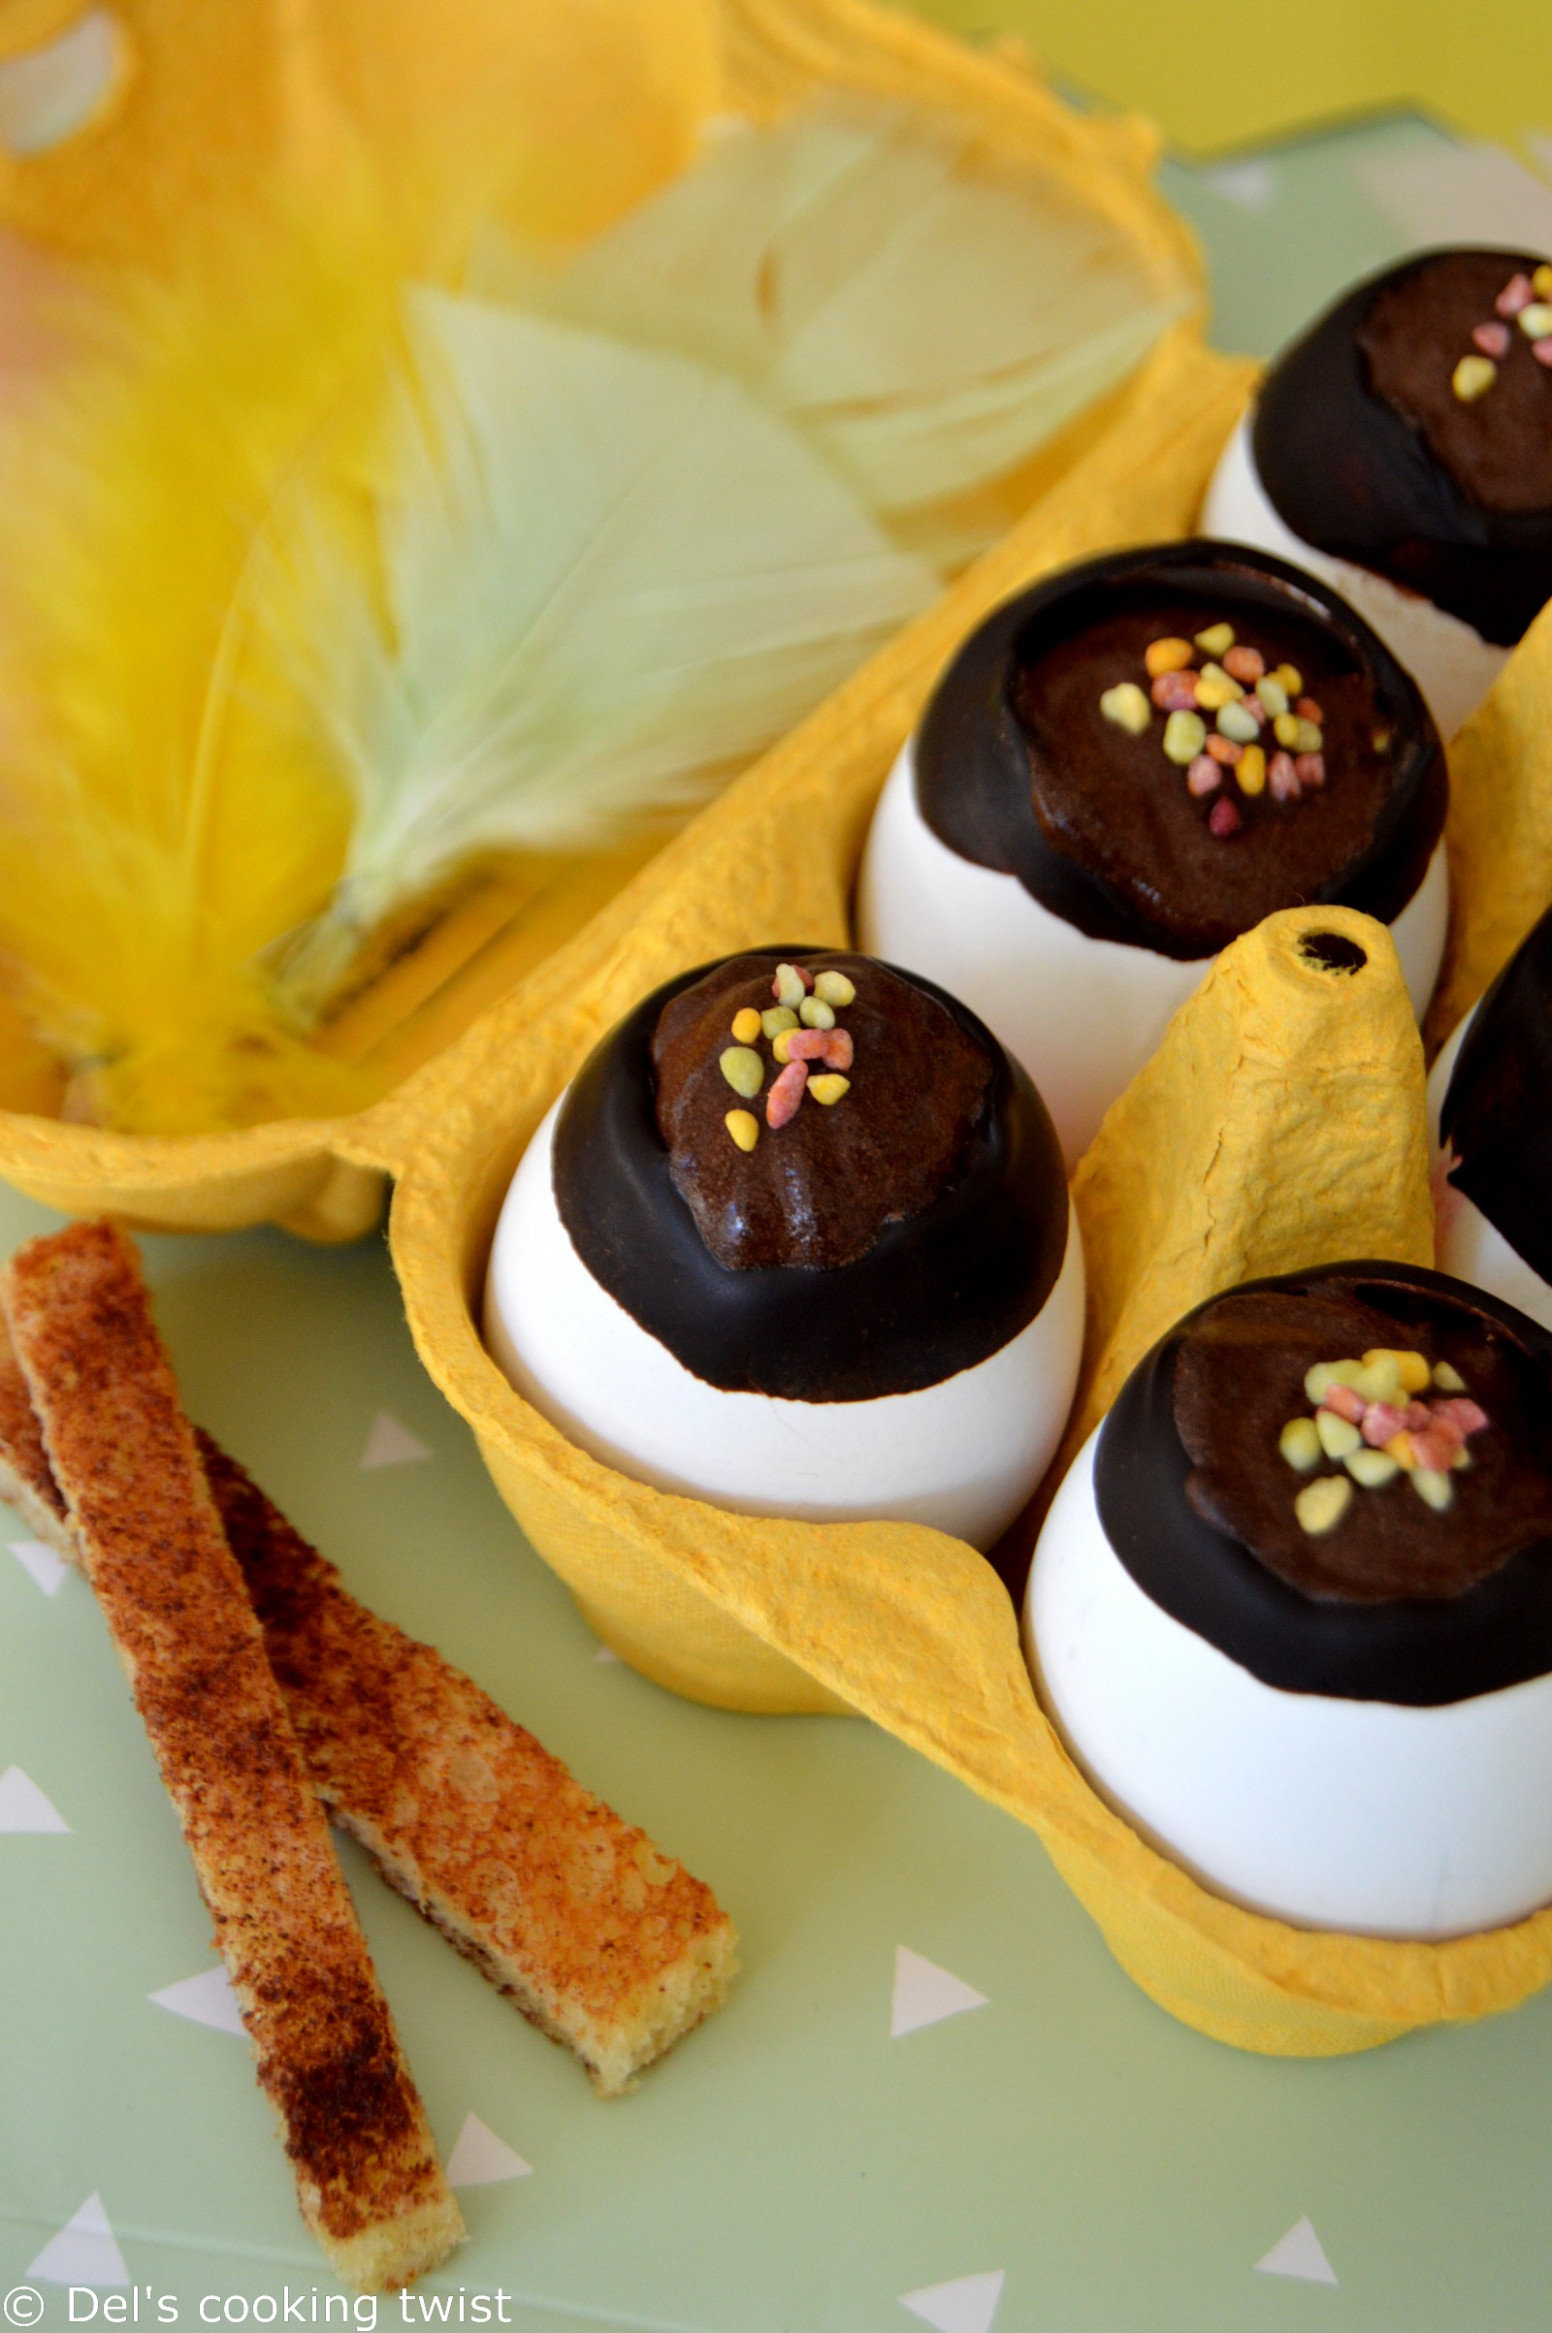 Chocolate Mousse filled Easter Eggs and Cinnamon Fingers ...